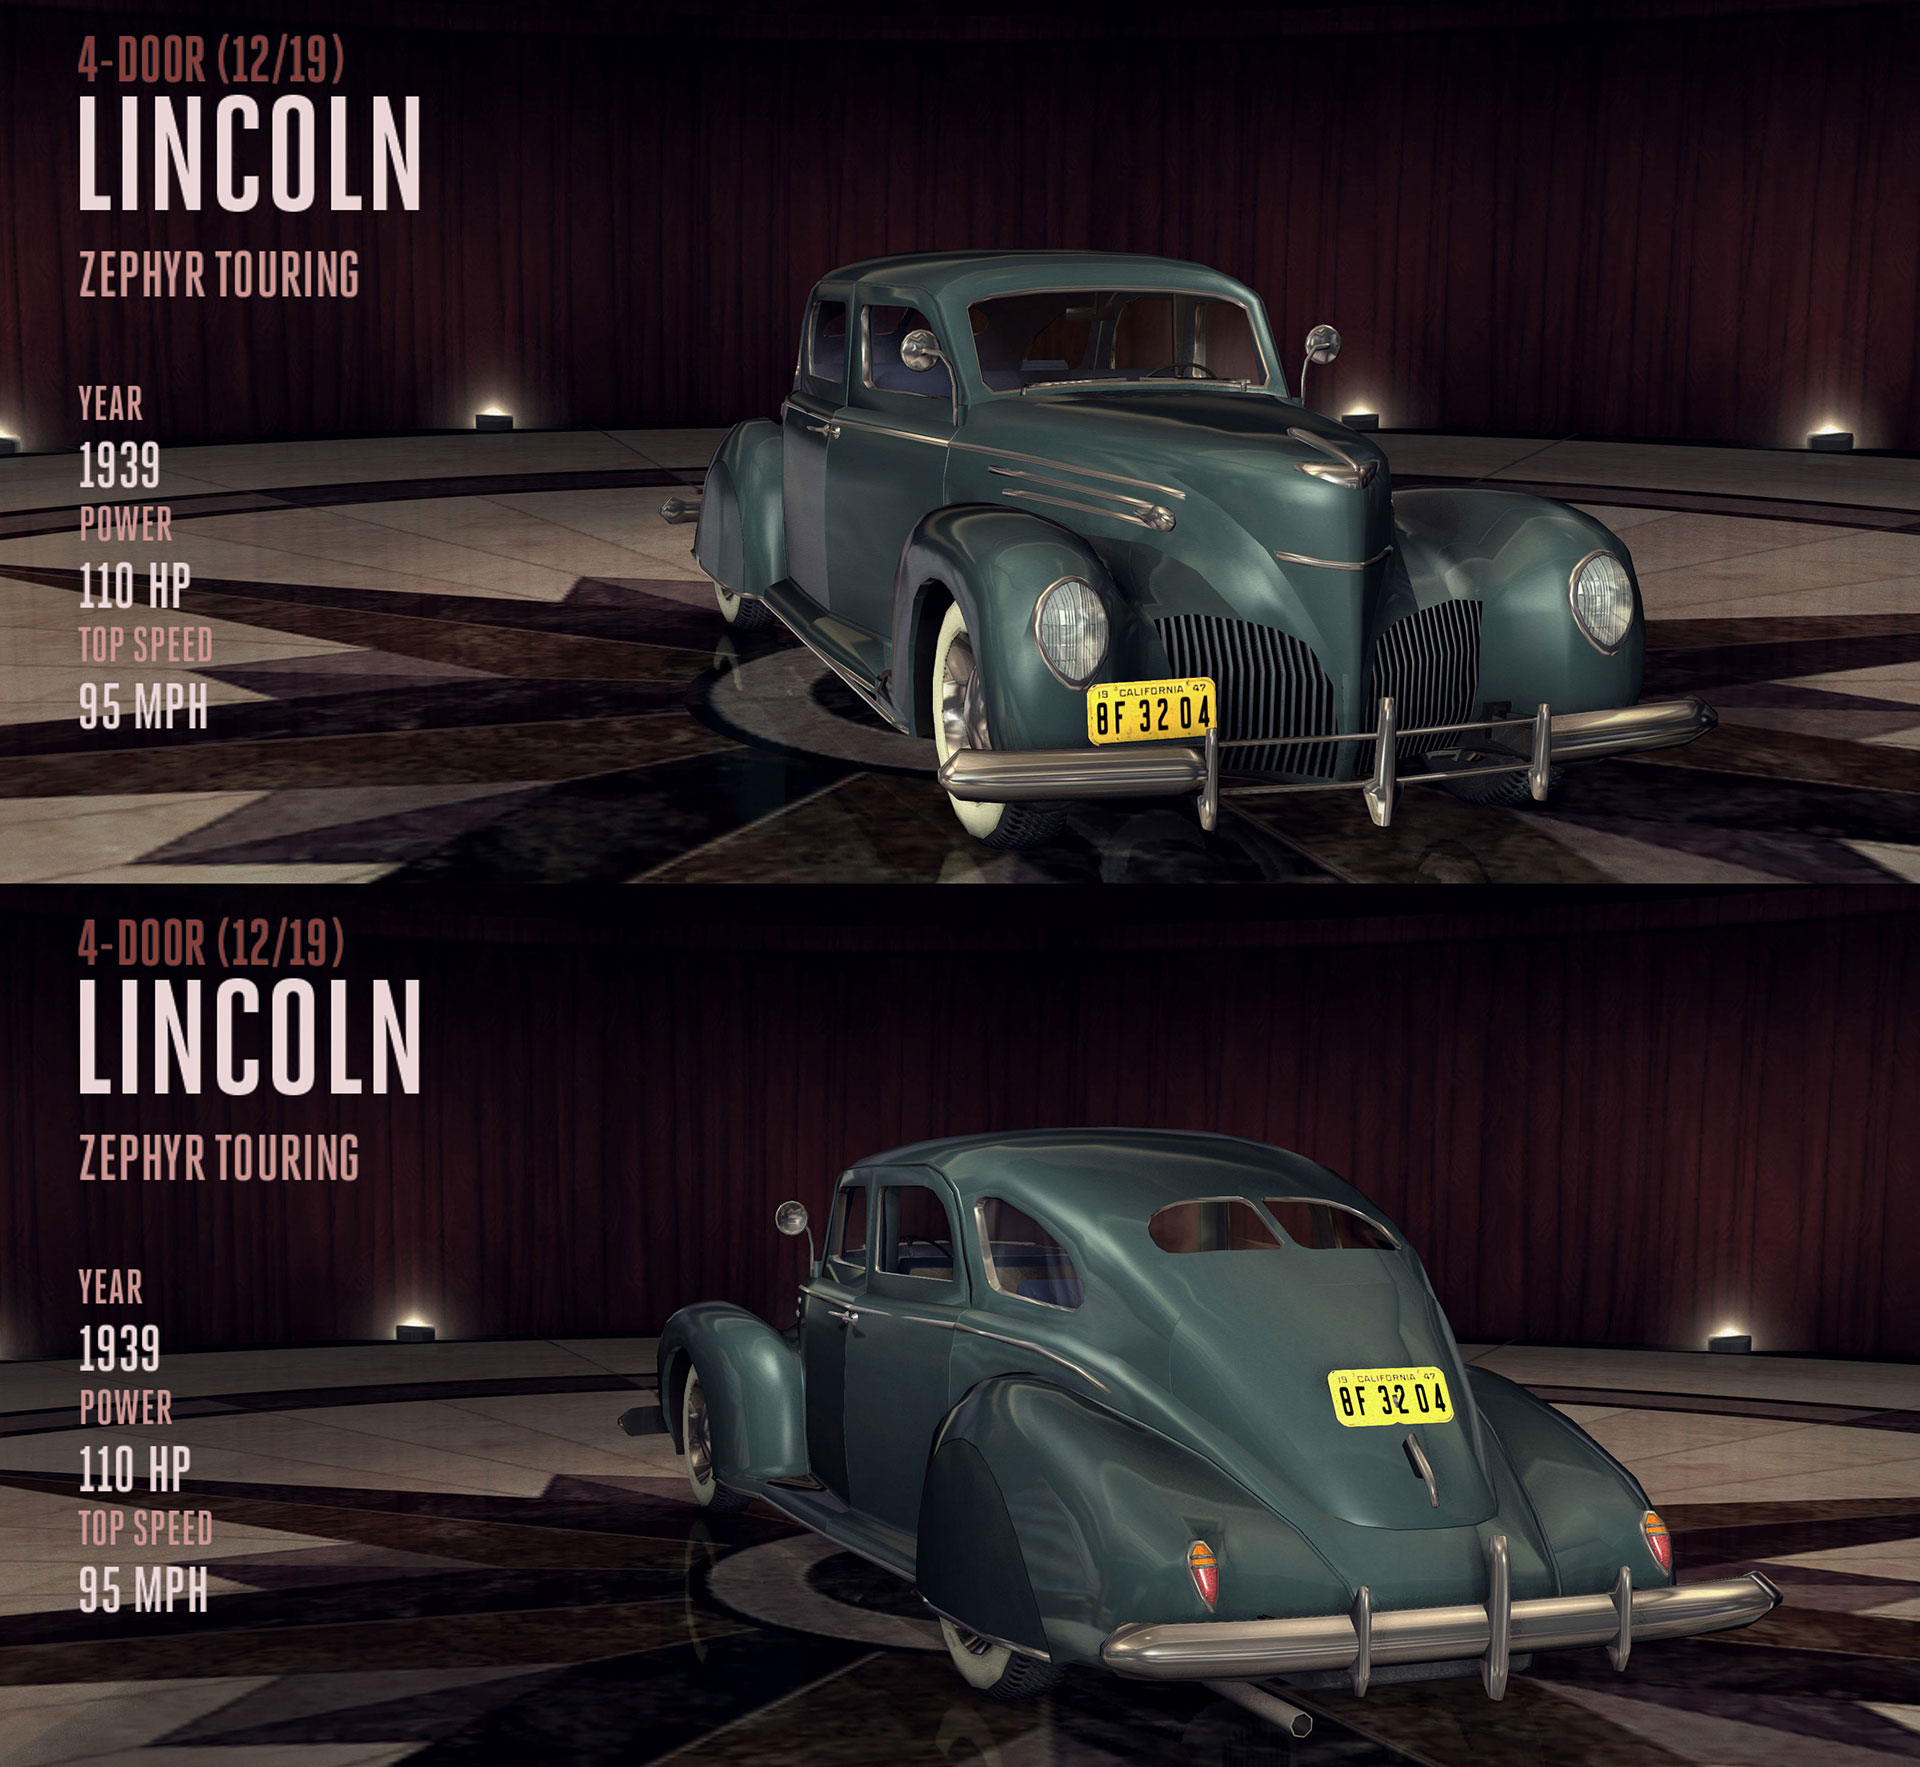 File:1939-lincoln-zephyr-touring.jpg